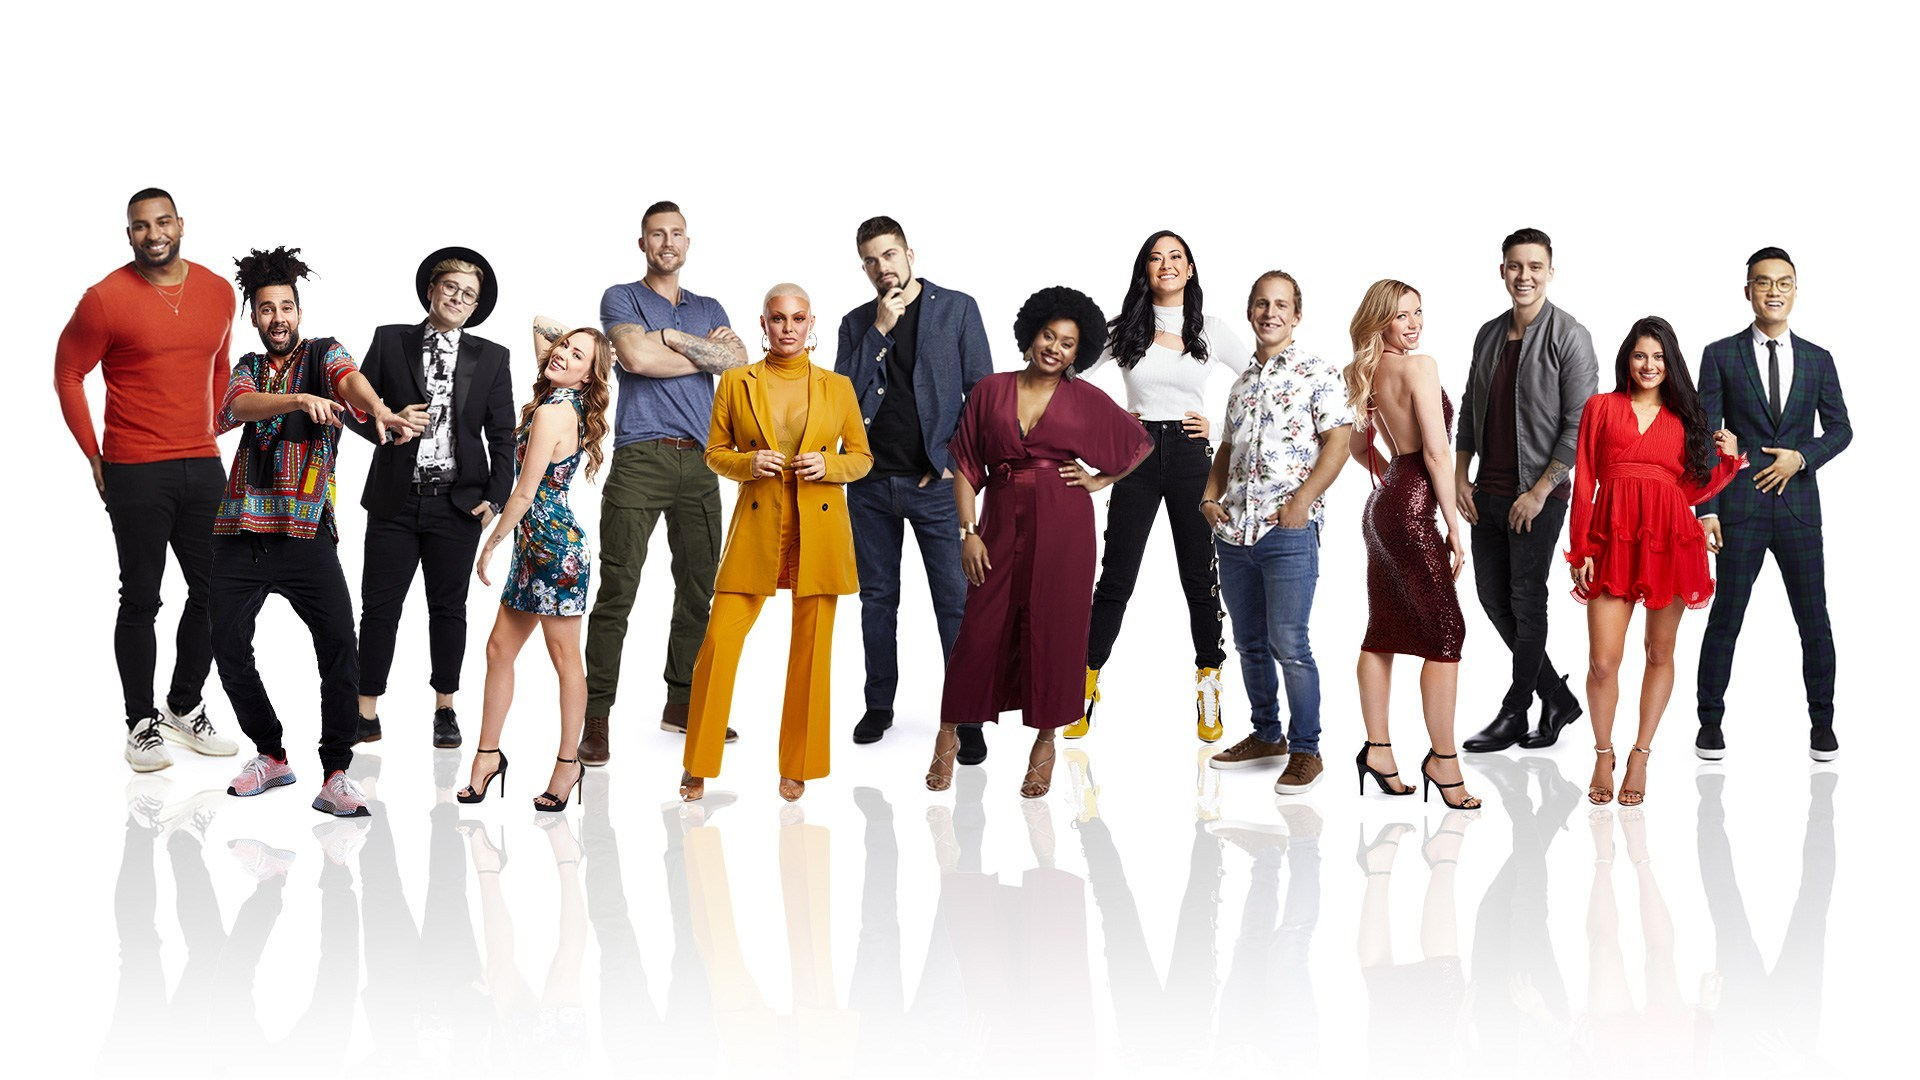 Big Brother Canada (TV Series 2013 - Now)